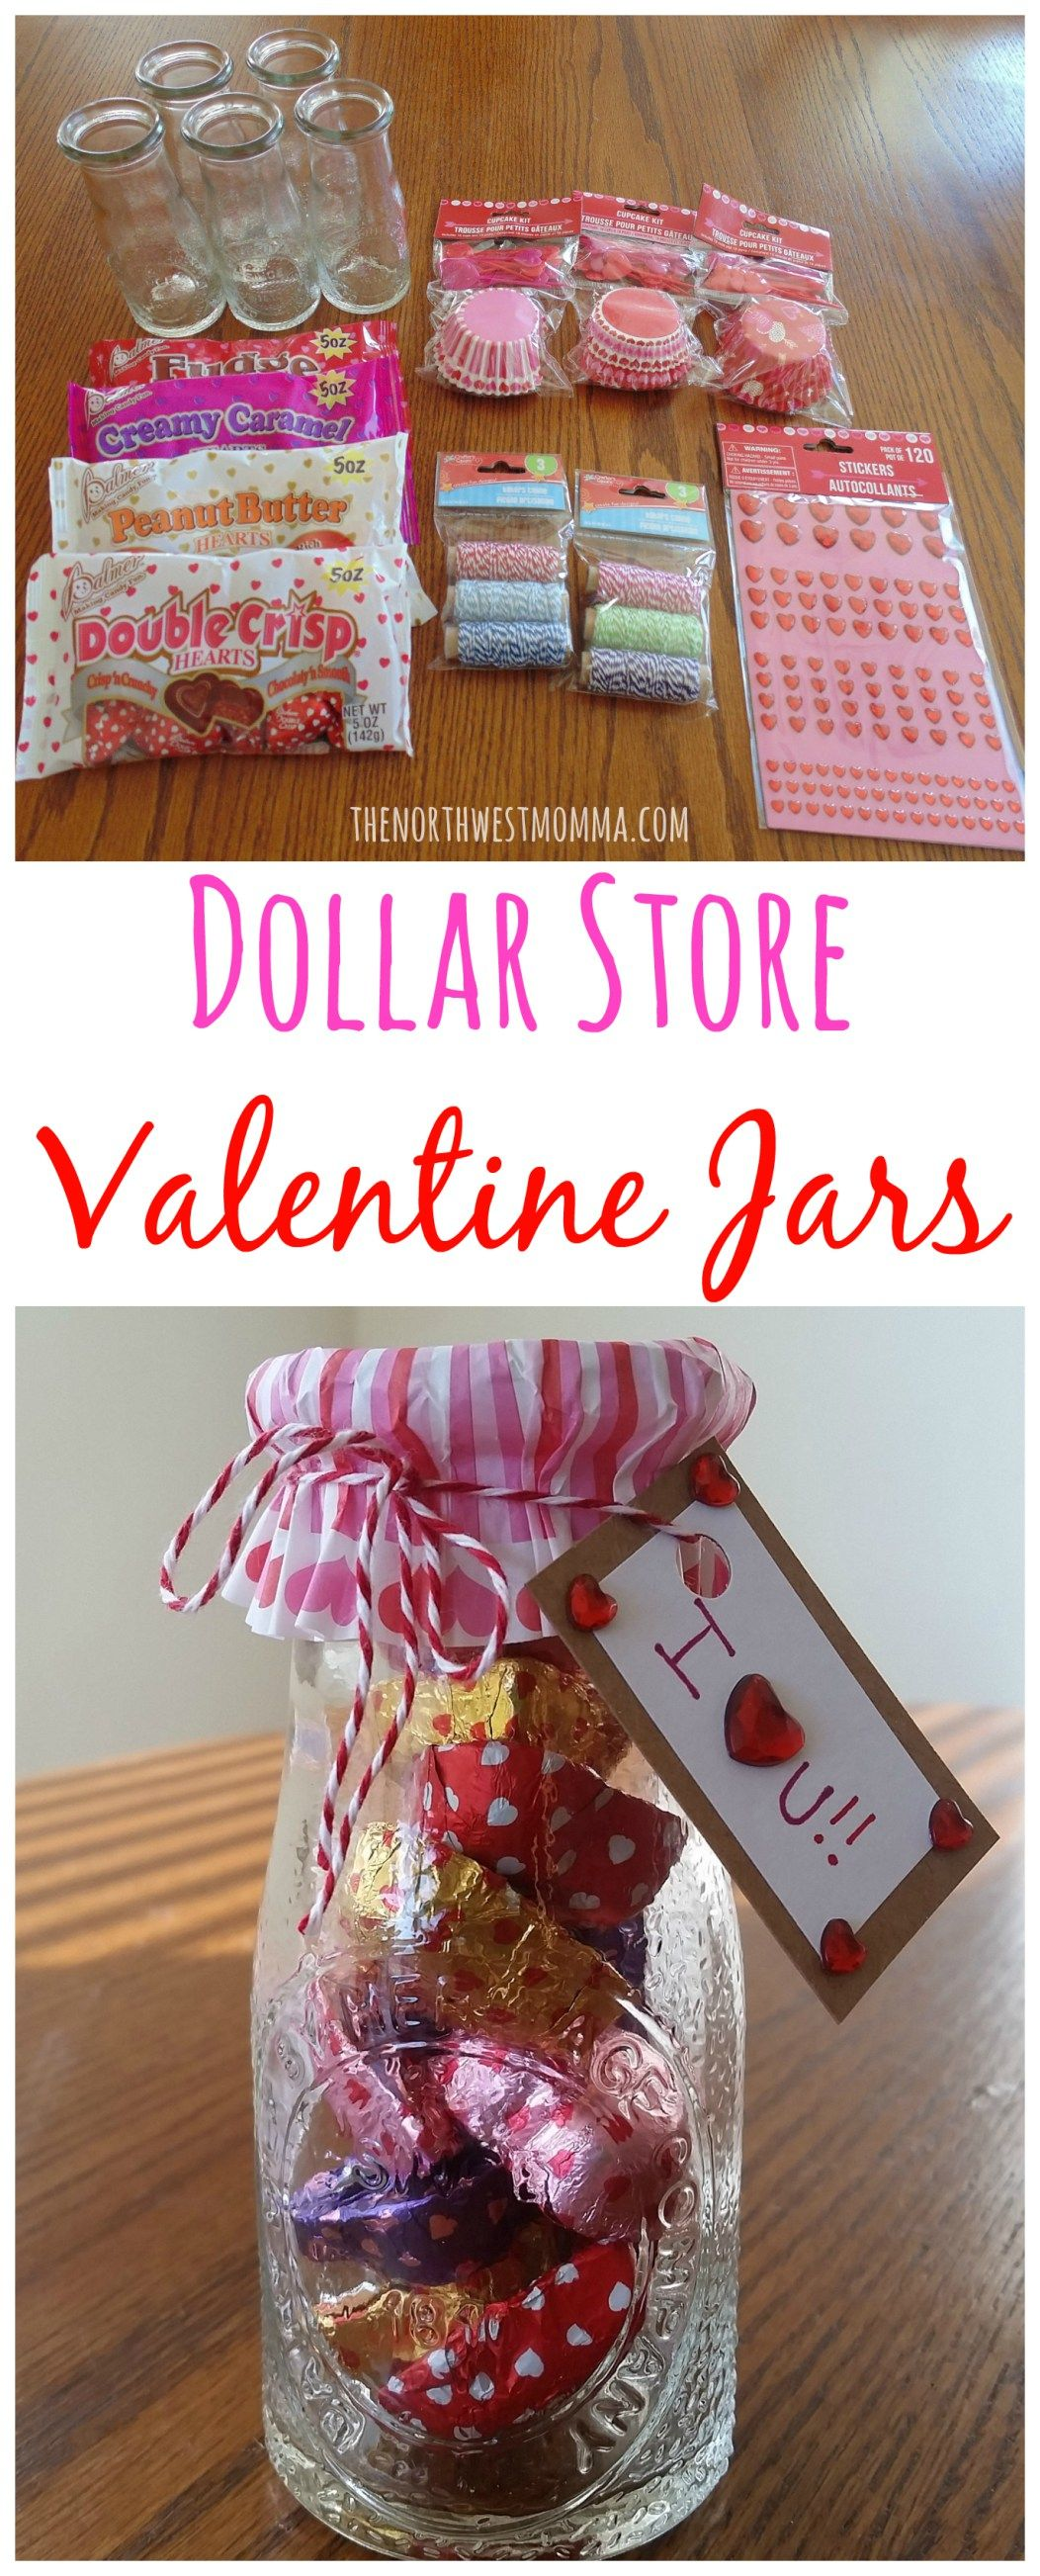 Dollar store valentine jars dollar stores jar and store